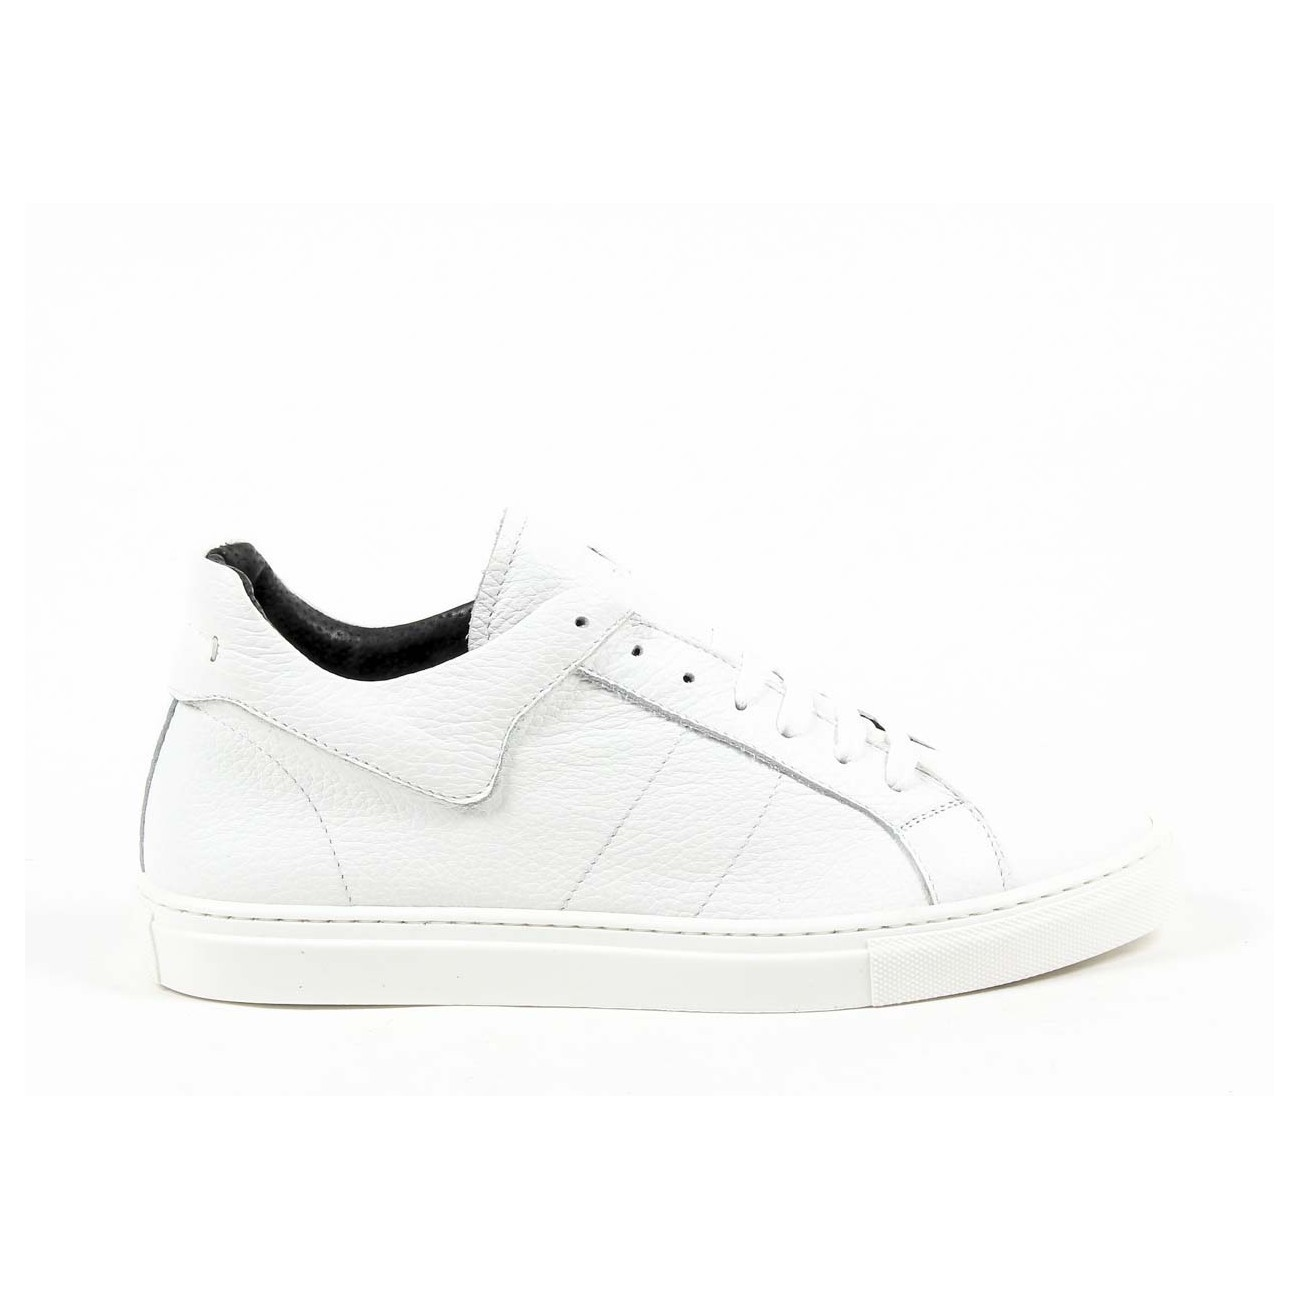 Primary image for V 1969 Italia Mens Sneaker V5421 ALCE BOTTOLATO BIANCO